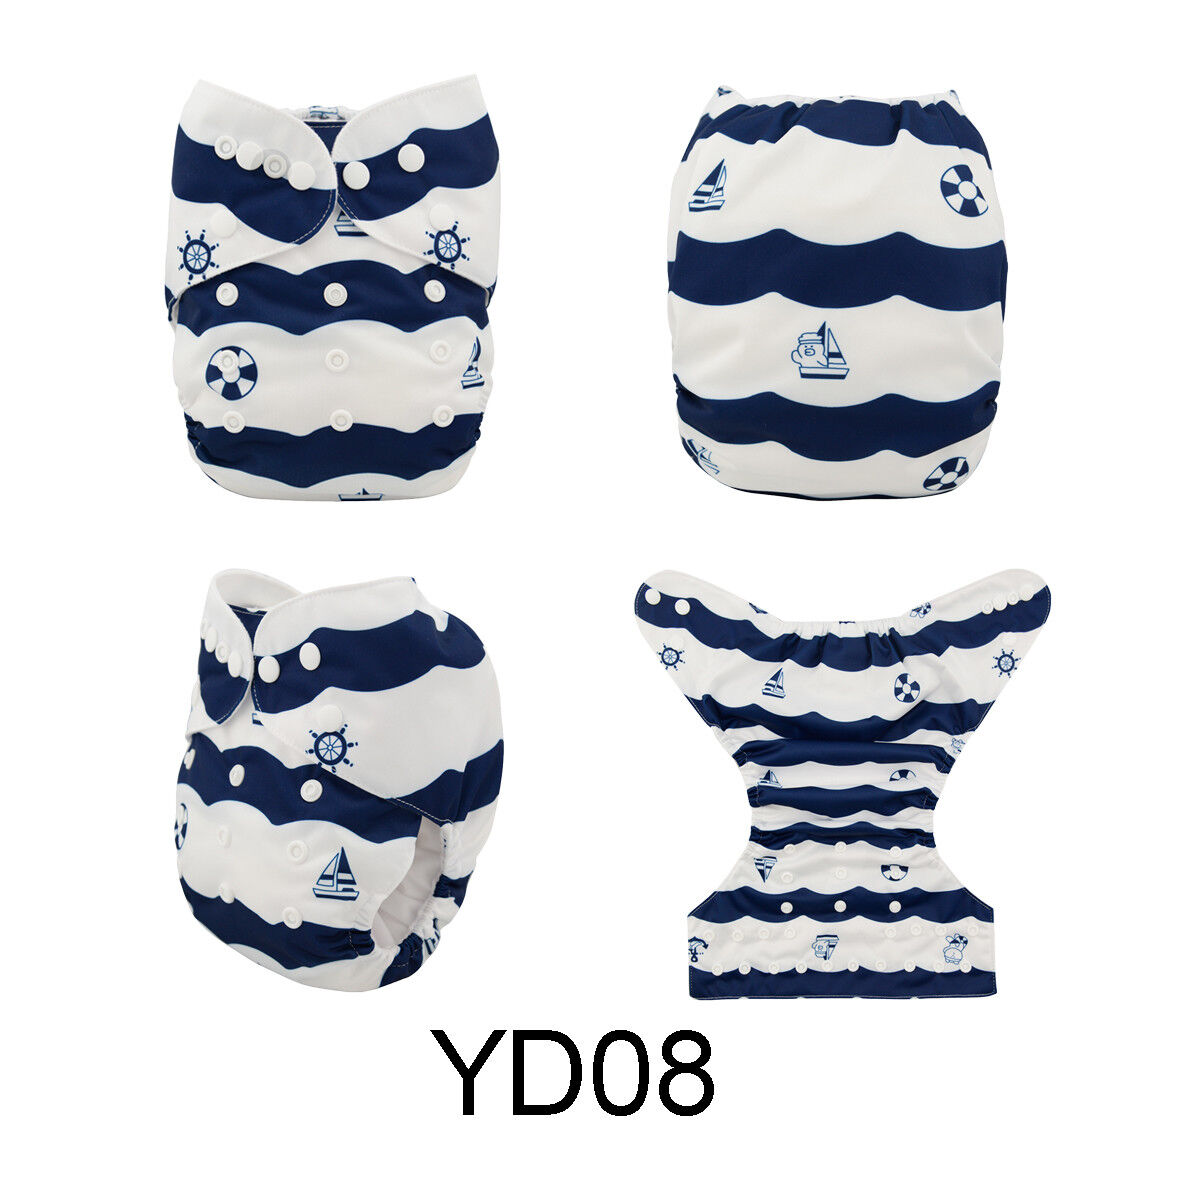 ALVABABY Reusable Baby Cloth Diapers OneSize Washable Pocket Nappies With Insert YD08